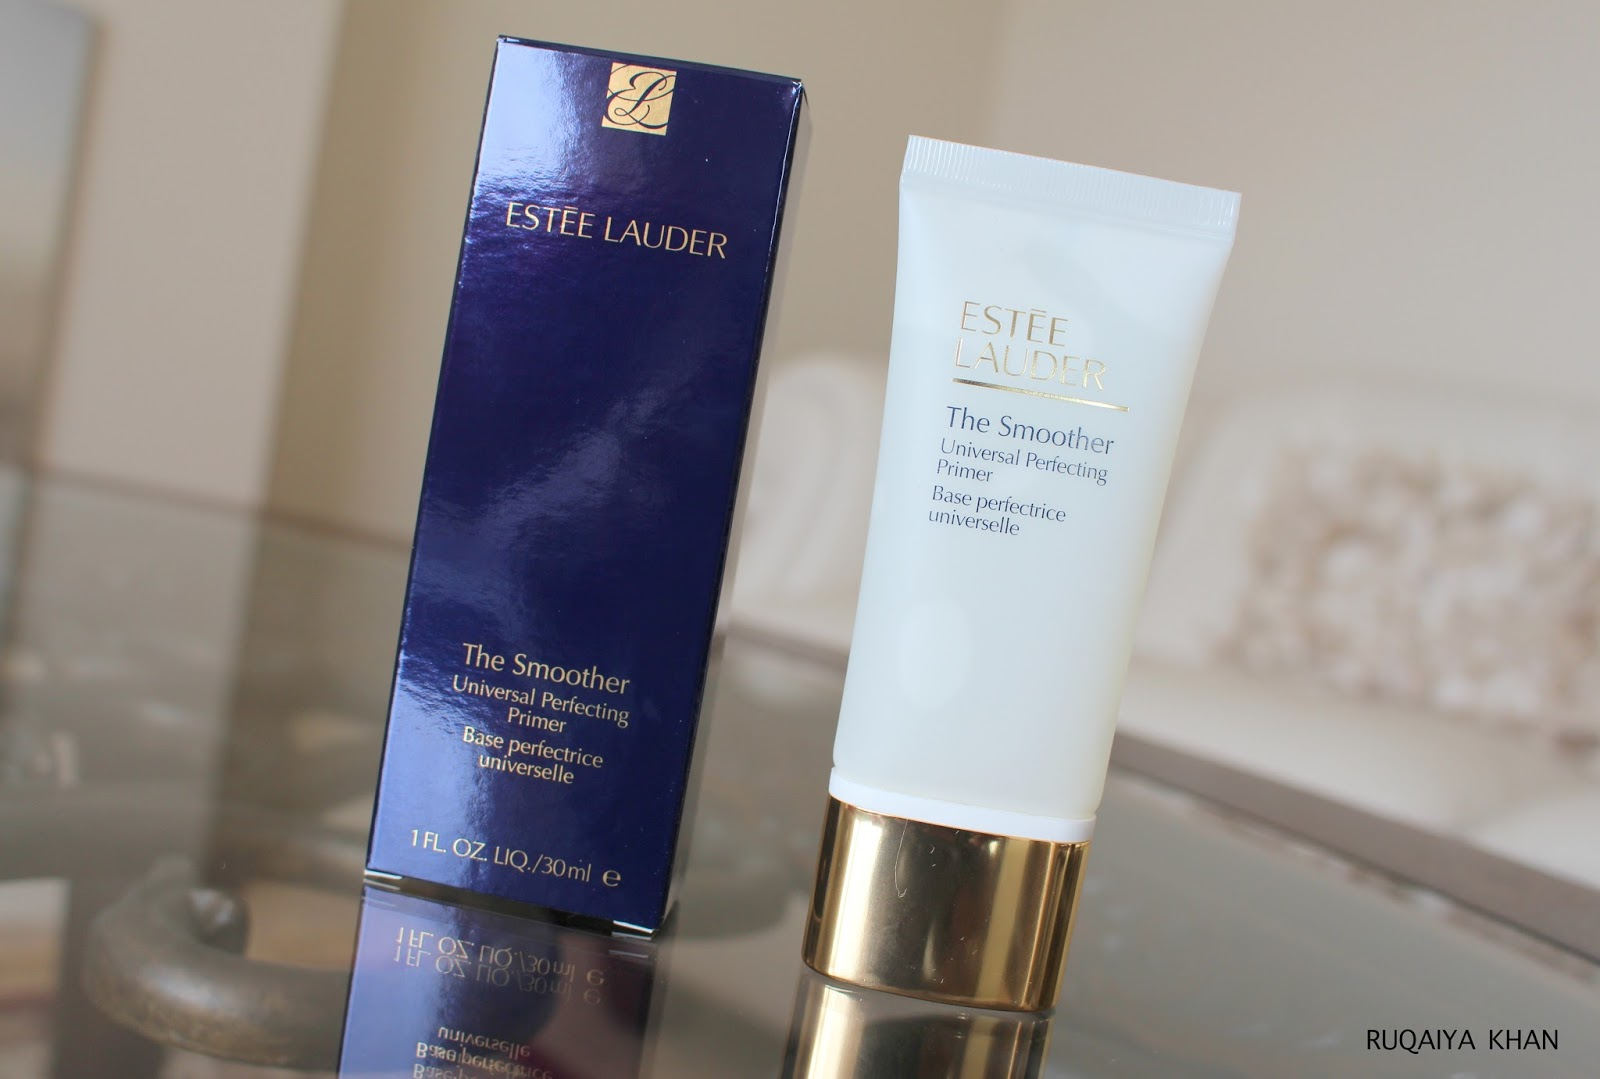 The Smoother Universal Perfecting Primer by Estée Lauder #6